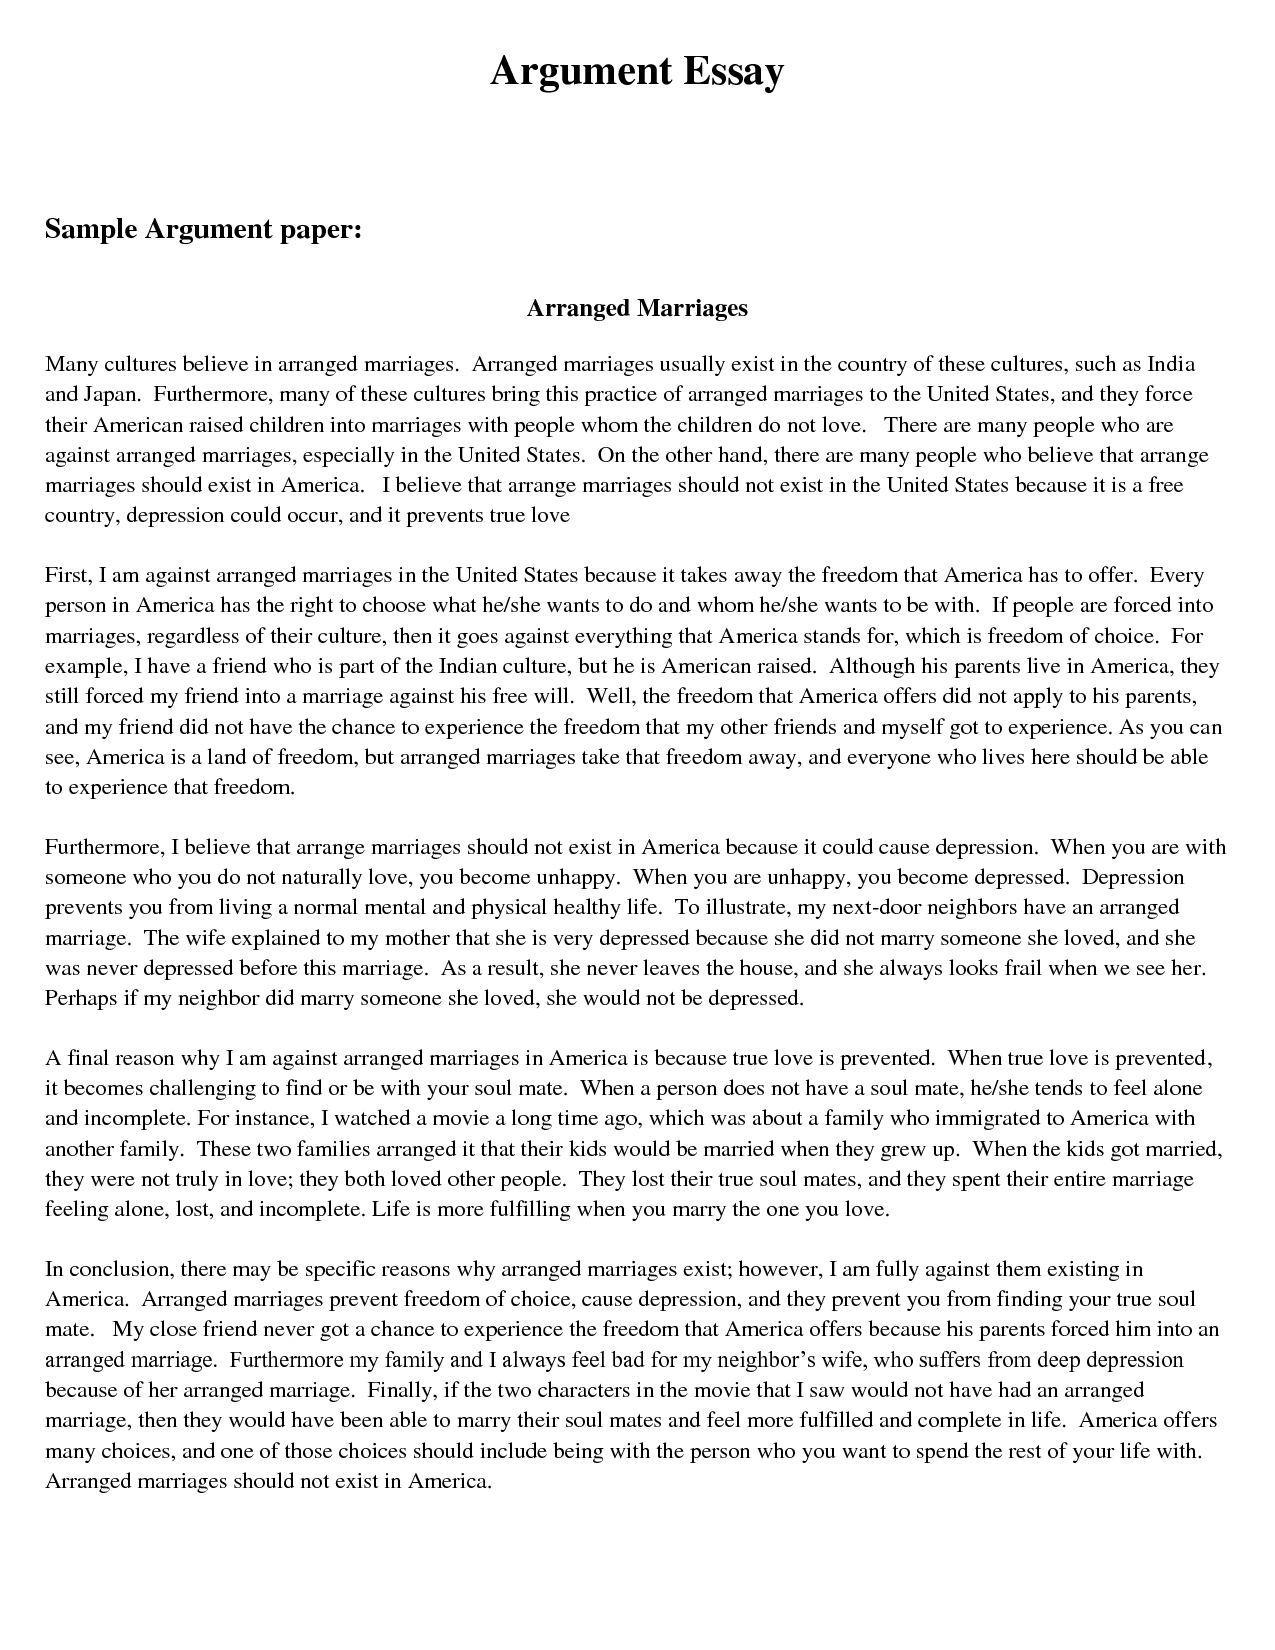 Example of an essay paper